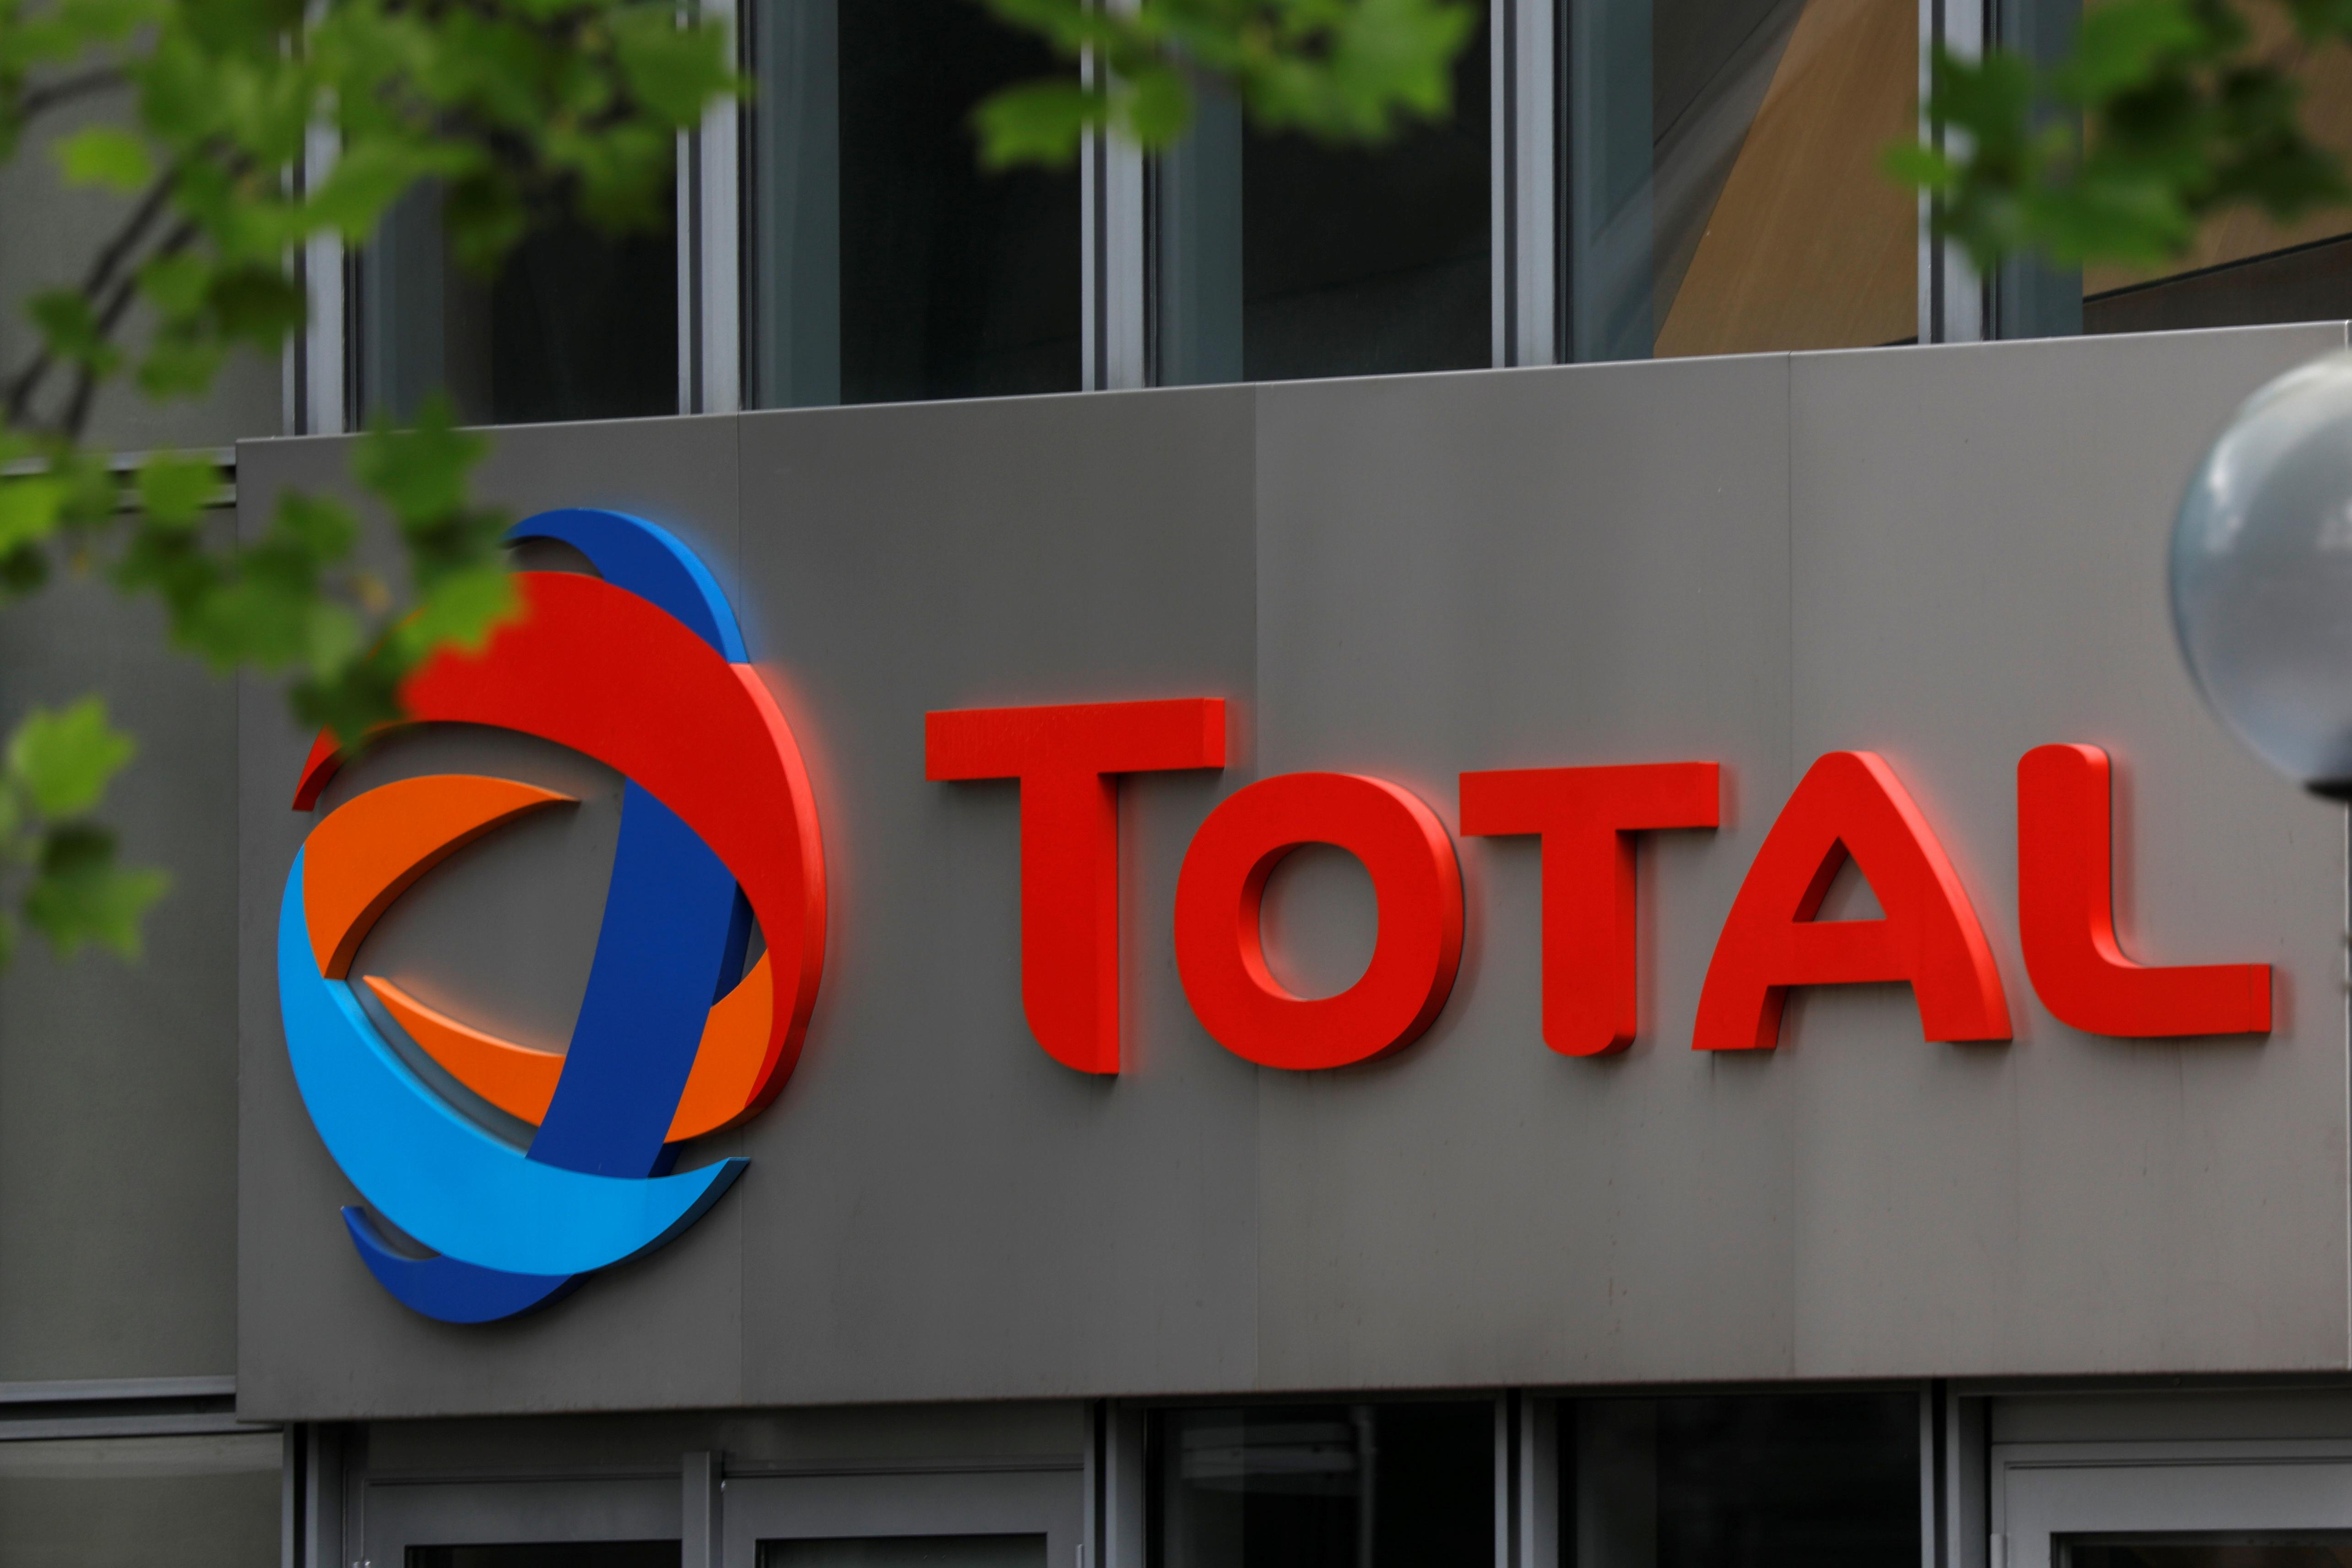 Denmark fines Total for discharging chemicals into North Sea - report